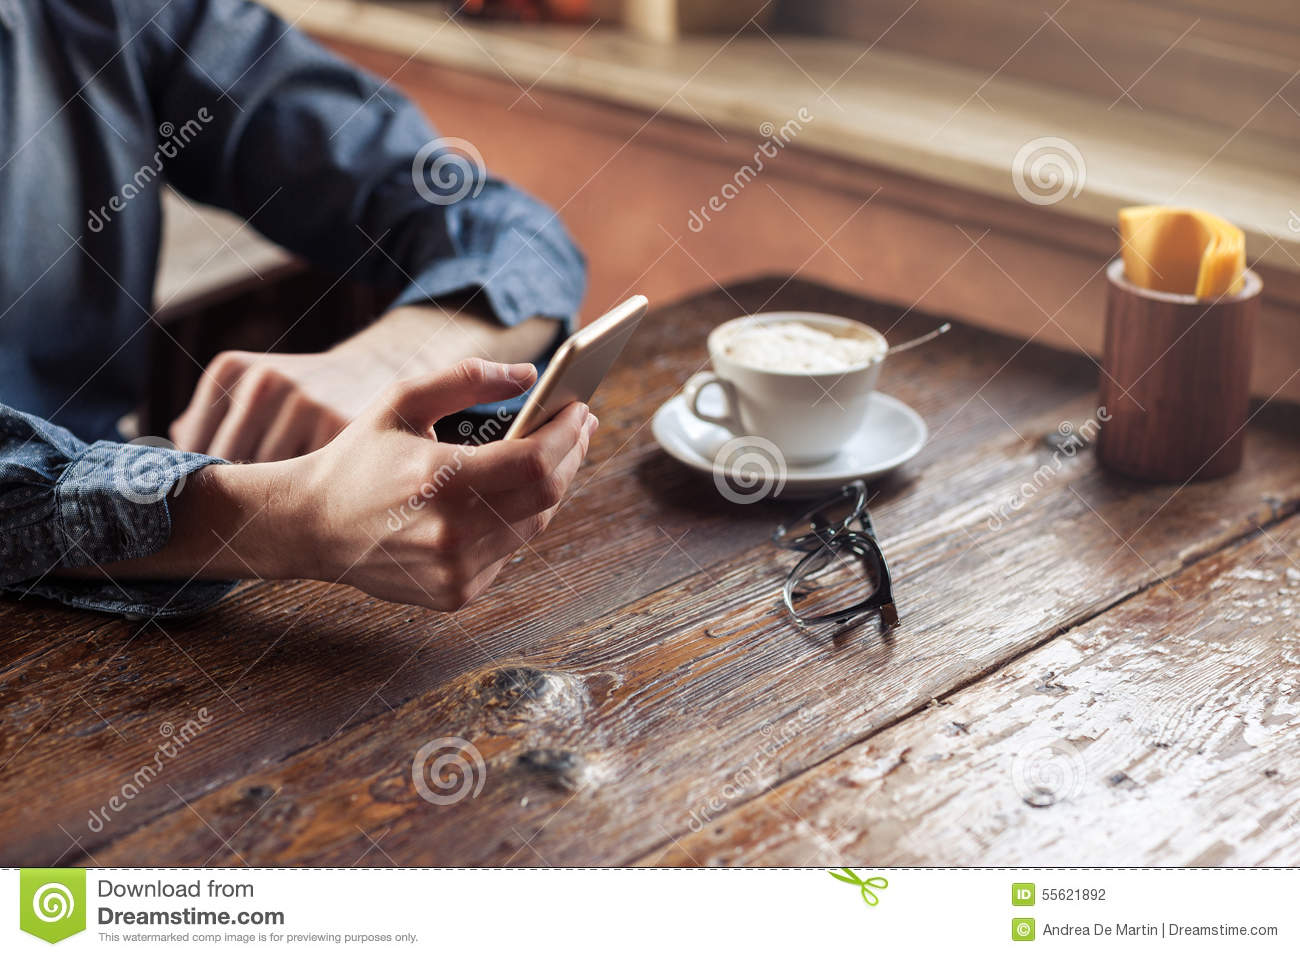 Hipster guy texting with his mobile phone